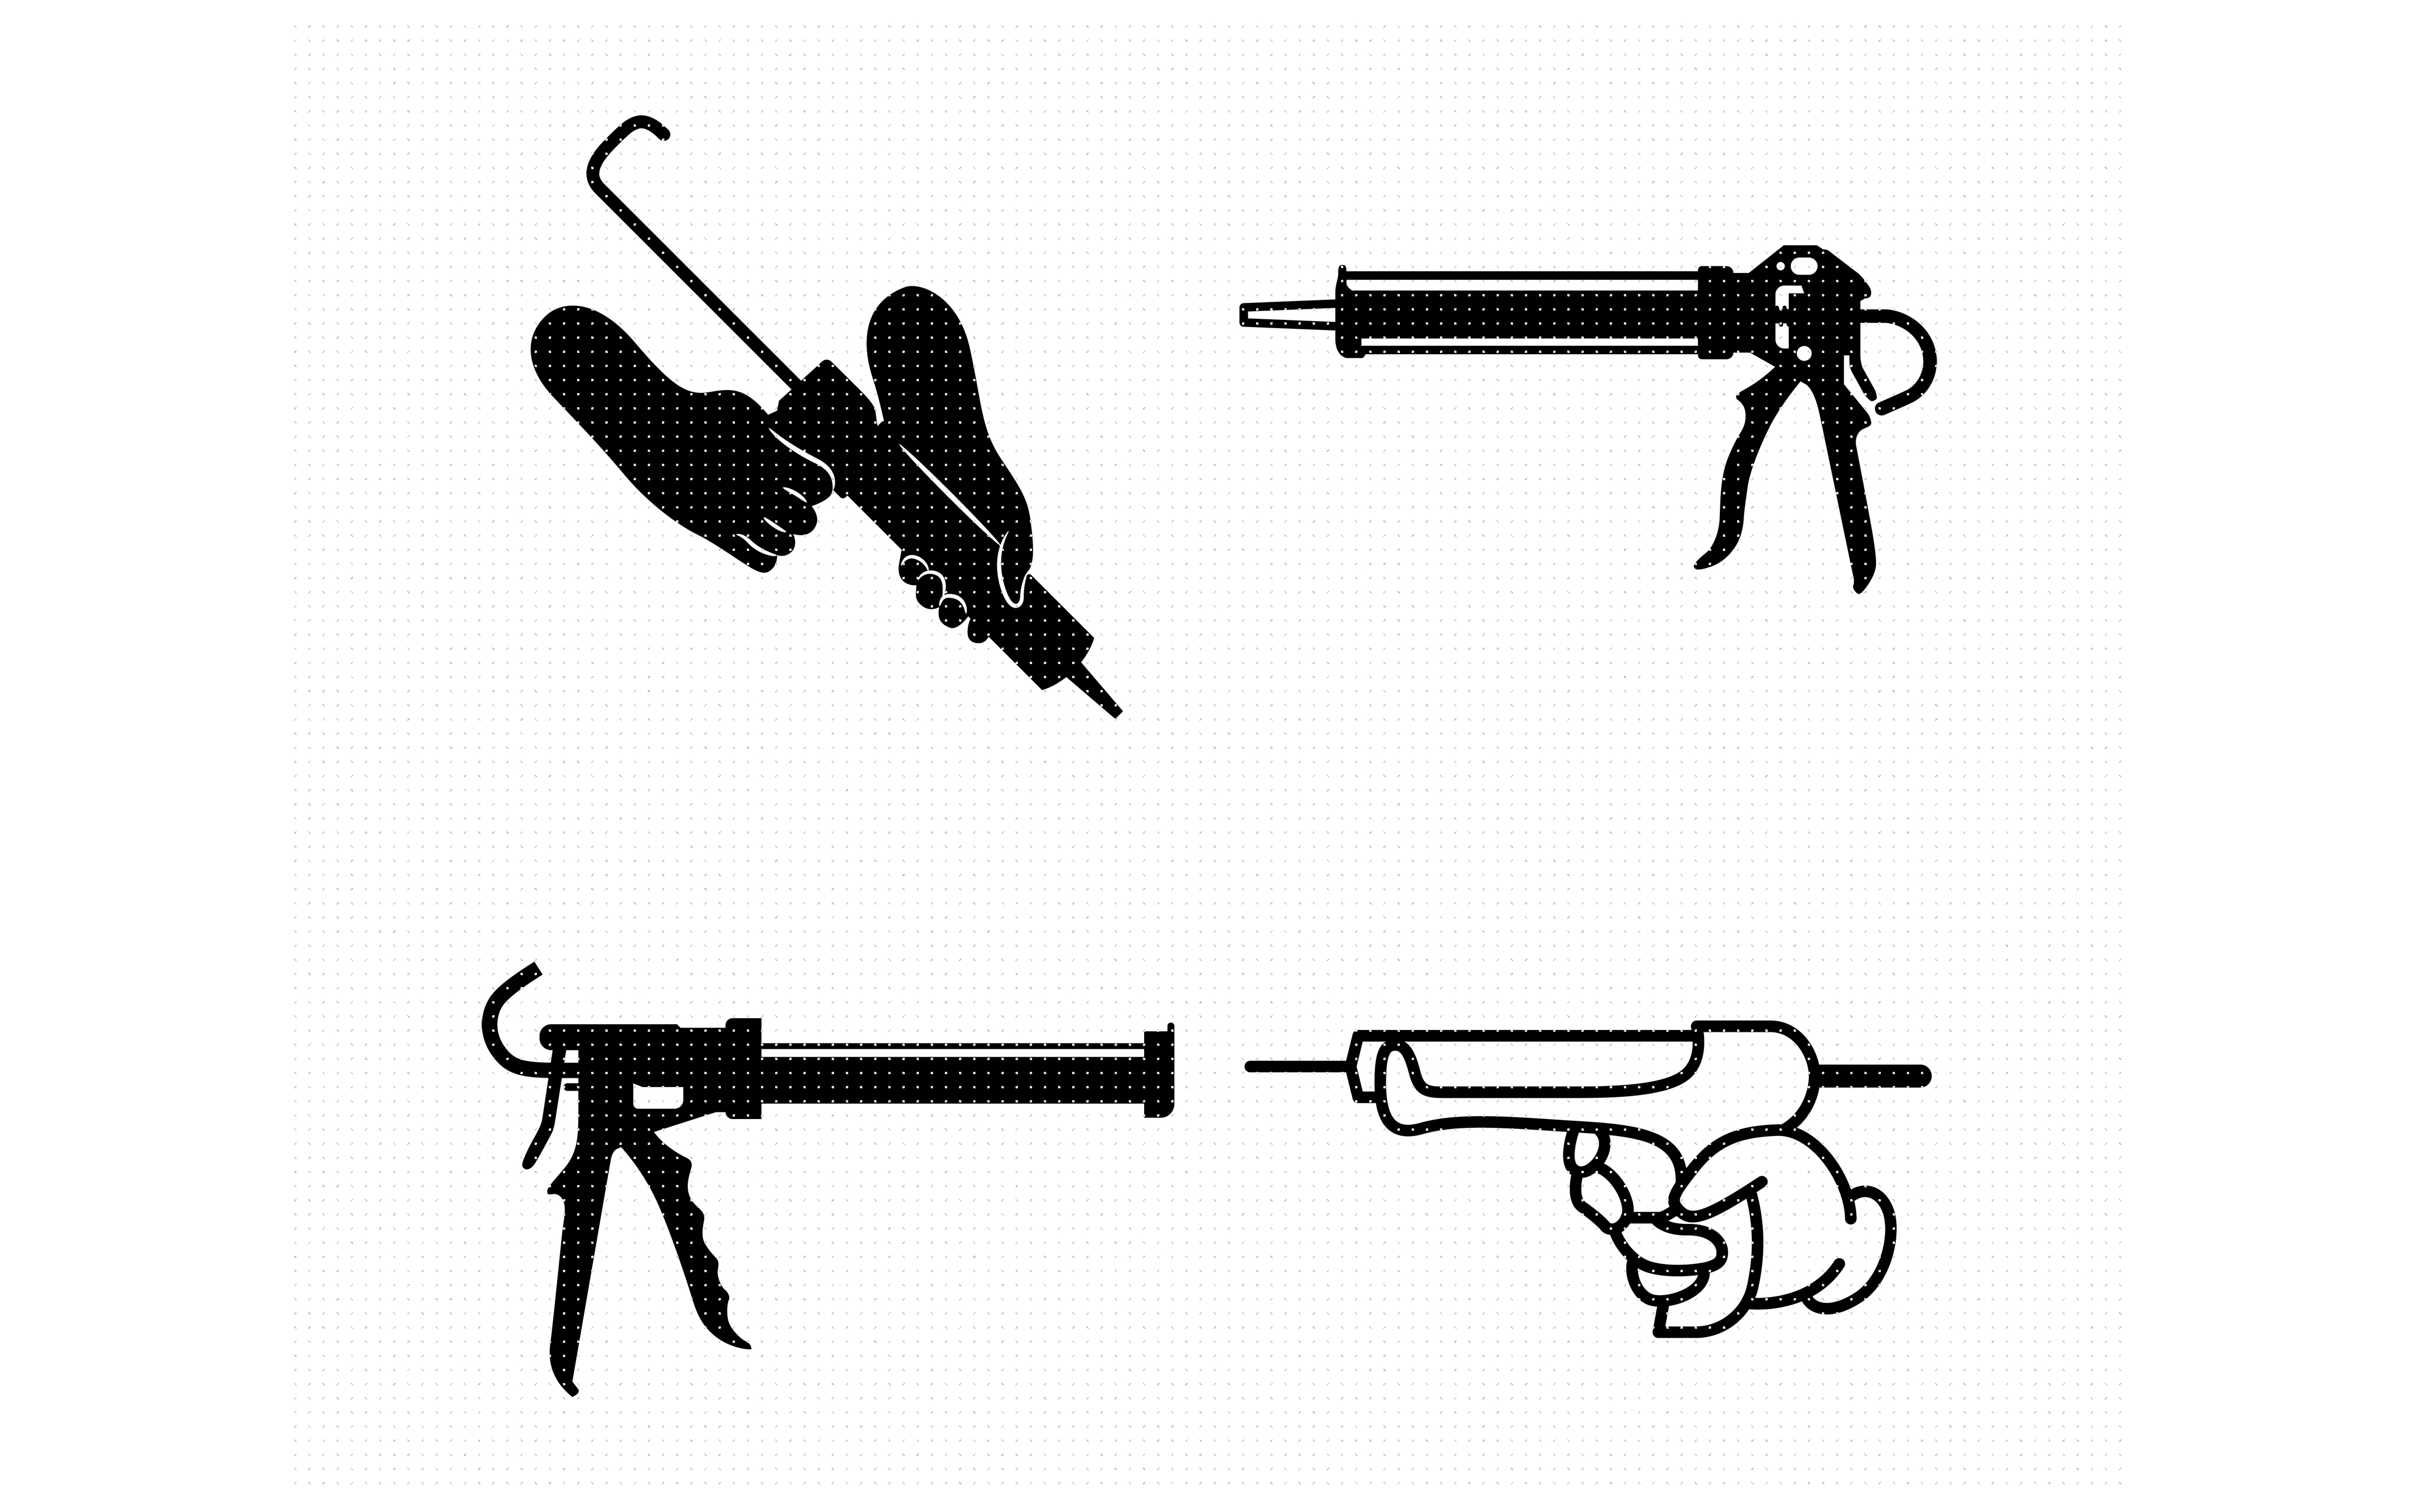 Download Free Caulking And Caulk Gun Adhesive Graphic By Crafteroks Creative for Cricut Explore, Silhouette and other cutting machines.